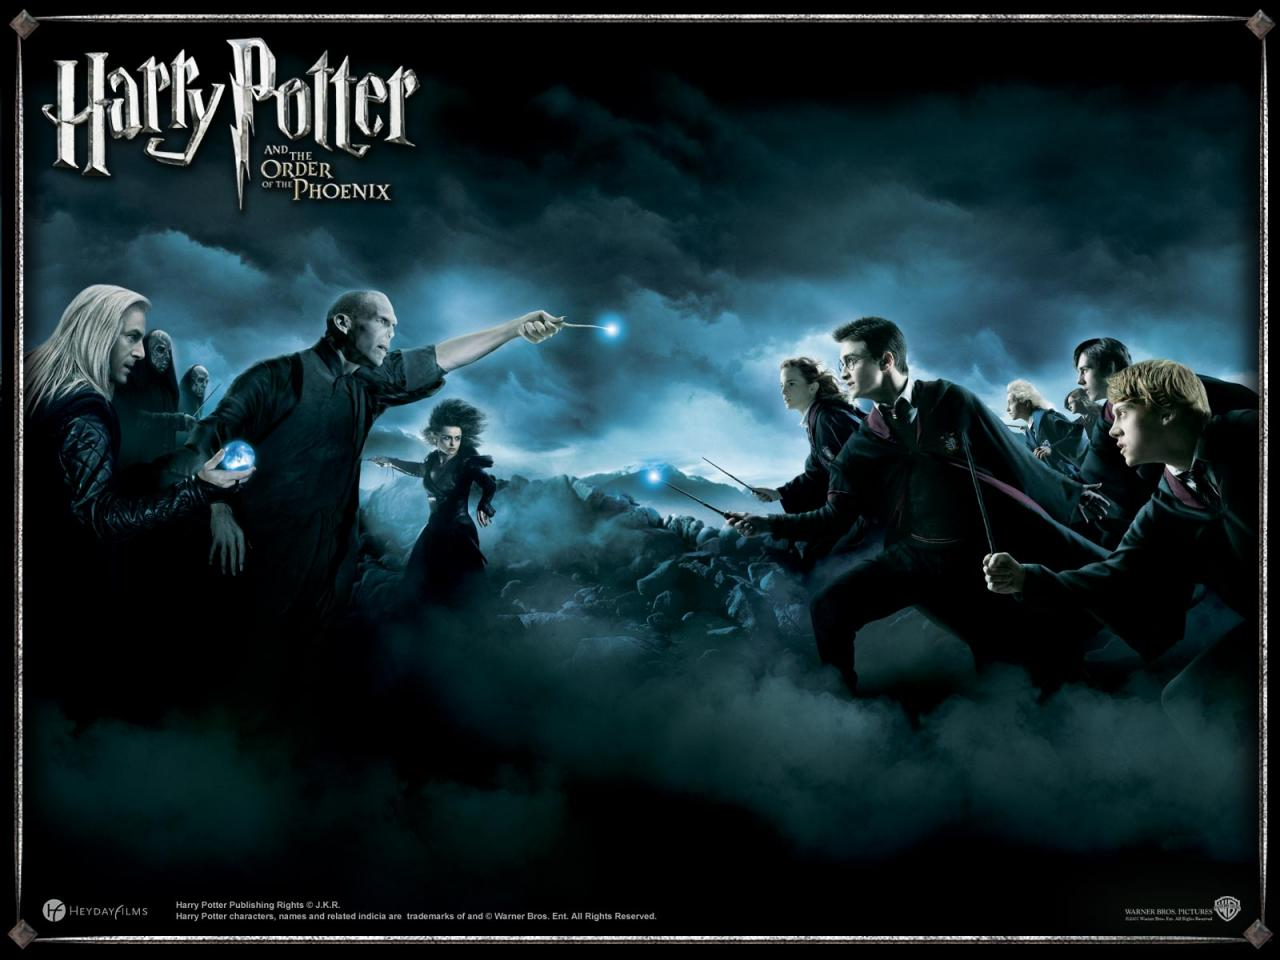 Harry Potter Wallpapers Full Hd ~ Sdeerwallpaper 1280x960